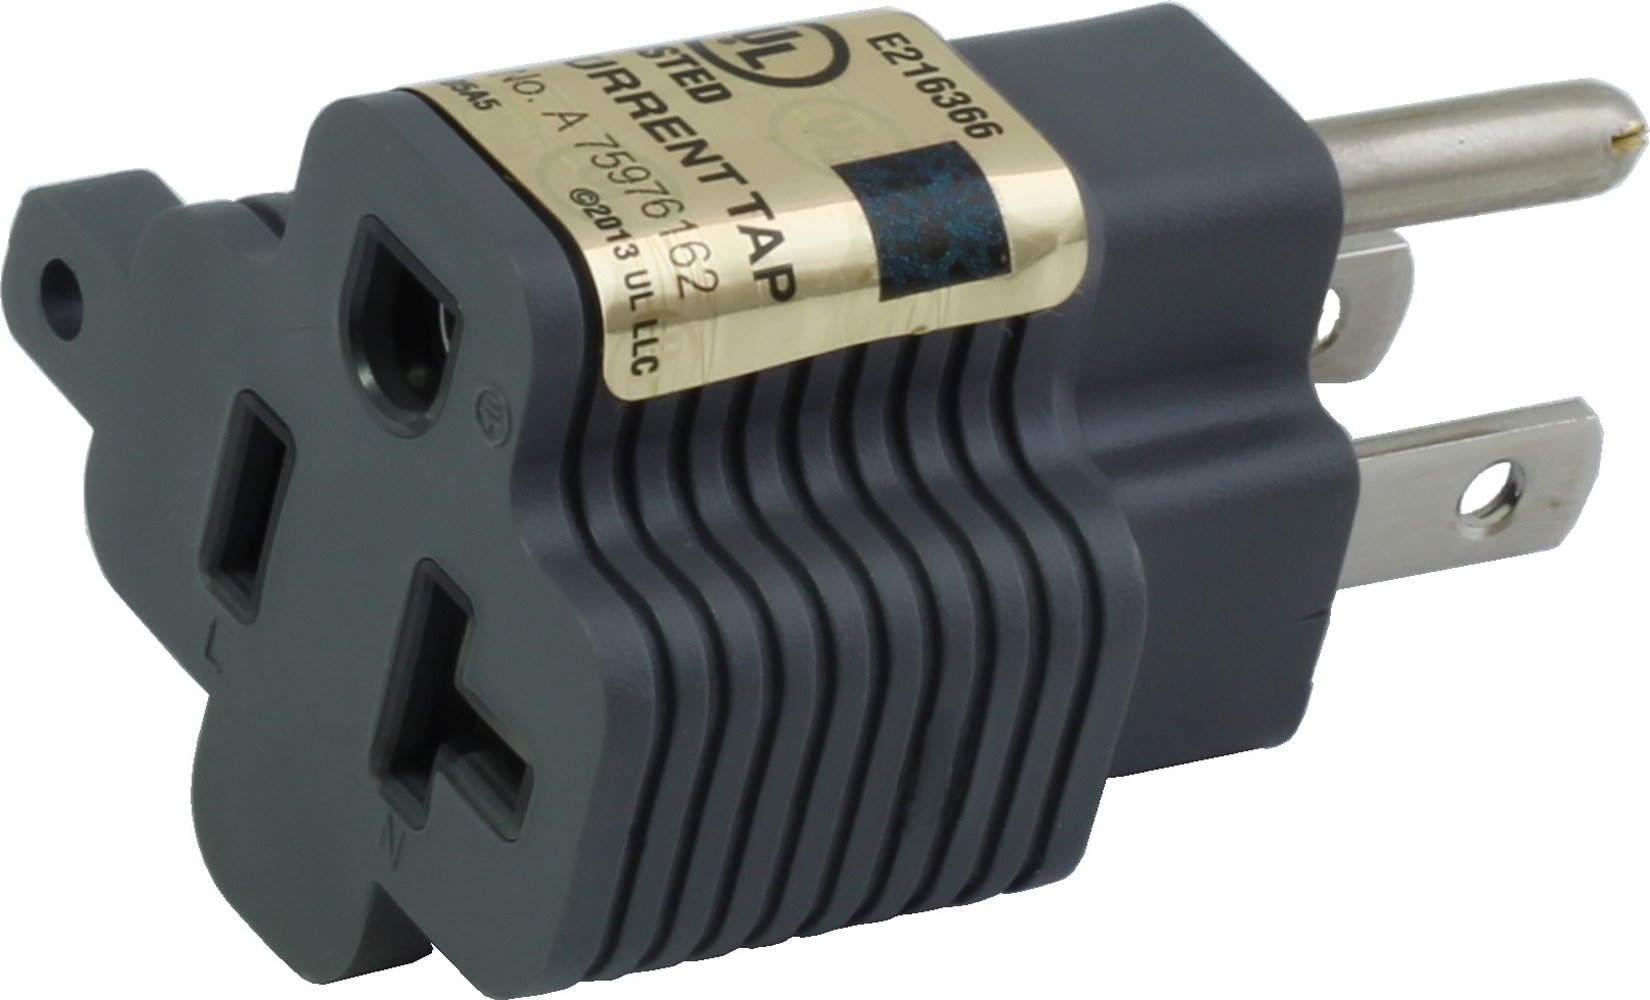 AC Works Xh515520 15 Amp Household Plug to 20 T Blade Female Adapter ...